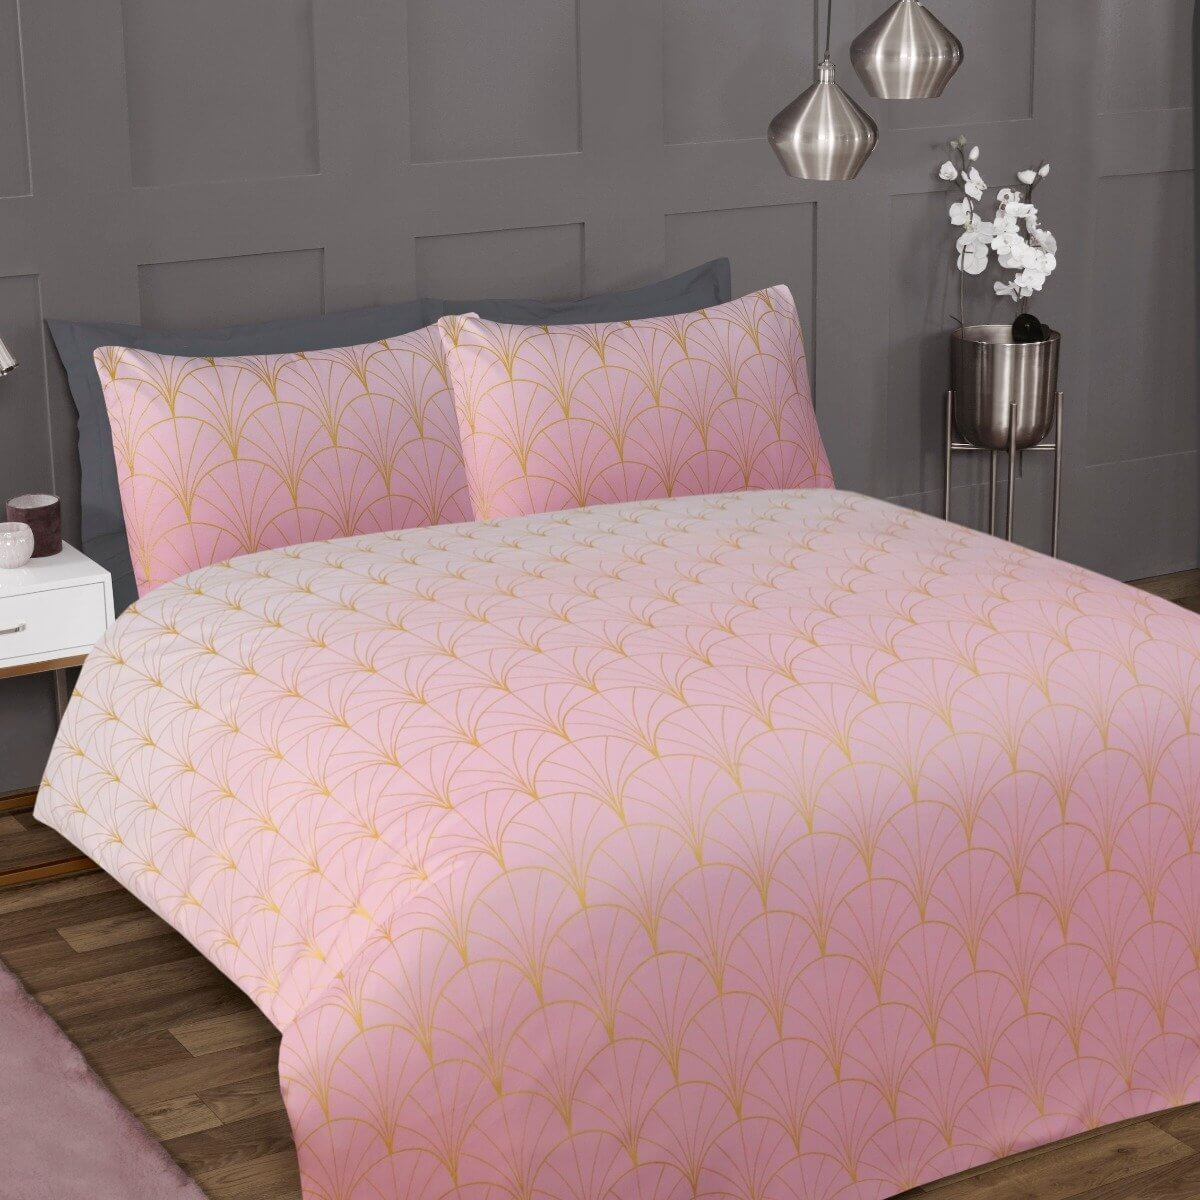 Ombre Metallic Deco Blush Pink Bedding - Luxury Duvet Cover and Pillowcase Set